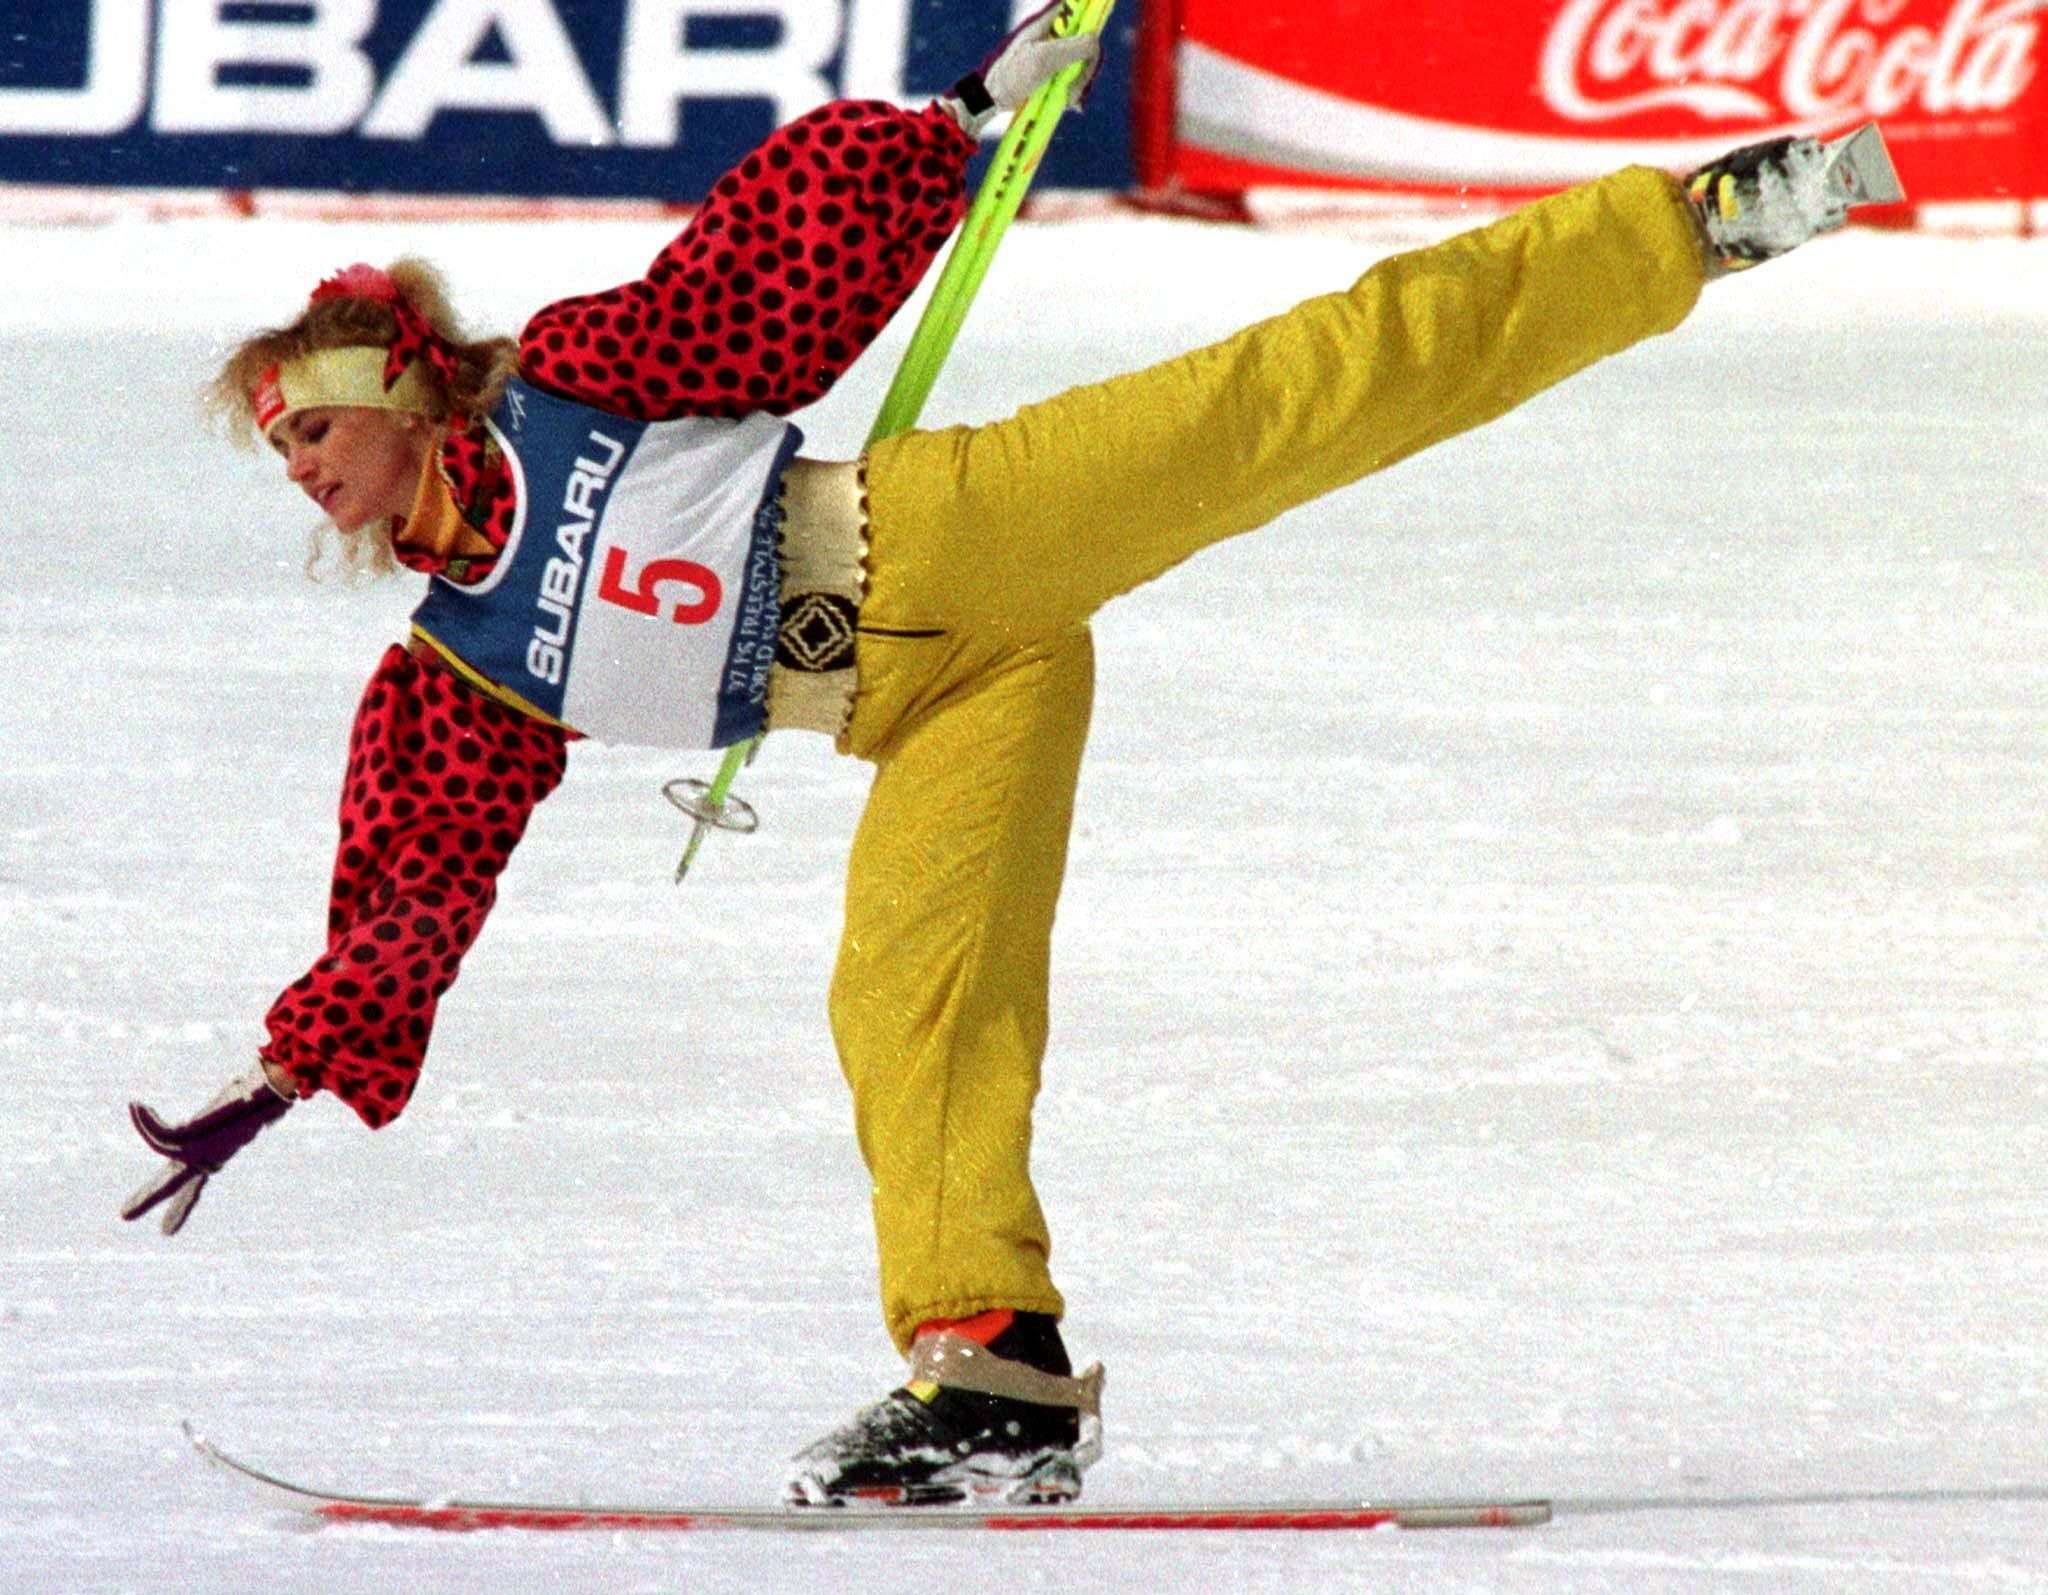 Oksana Kushenko of Russia performing in the ski ballet competition at the 1997 FIS Freestyle Ski World Championships in